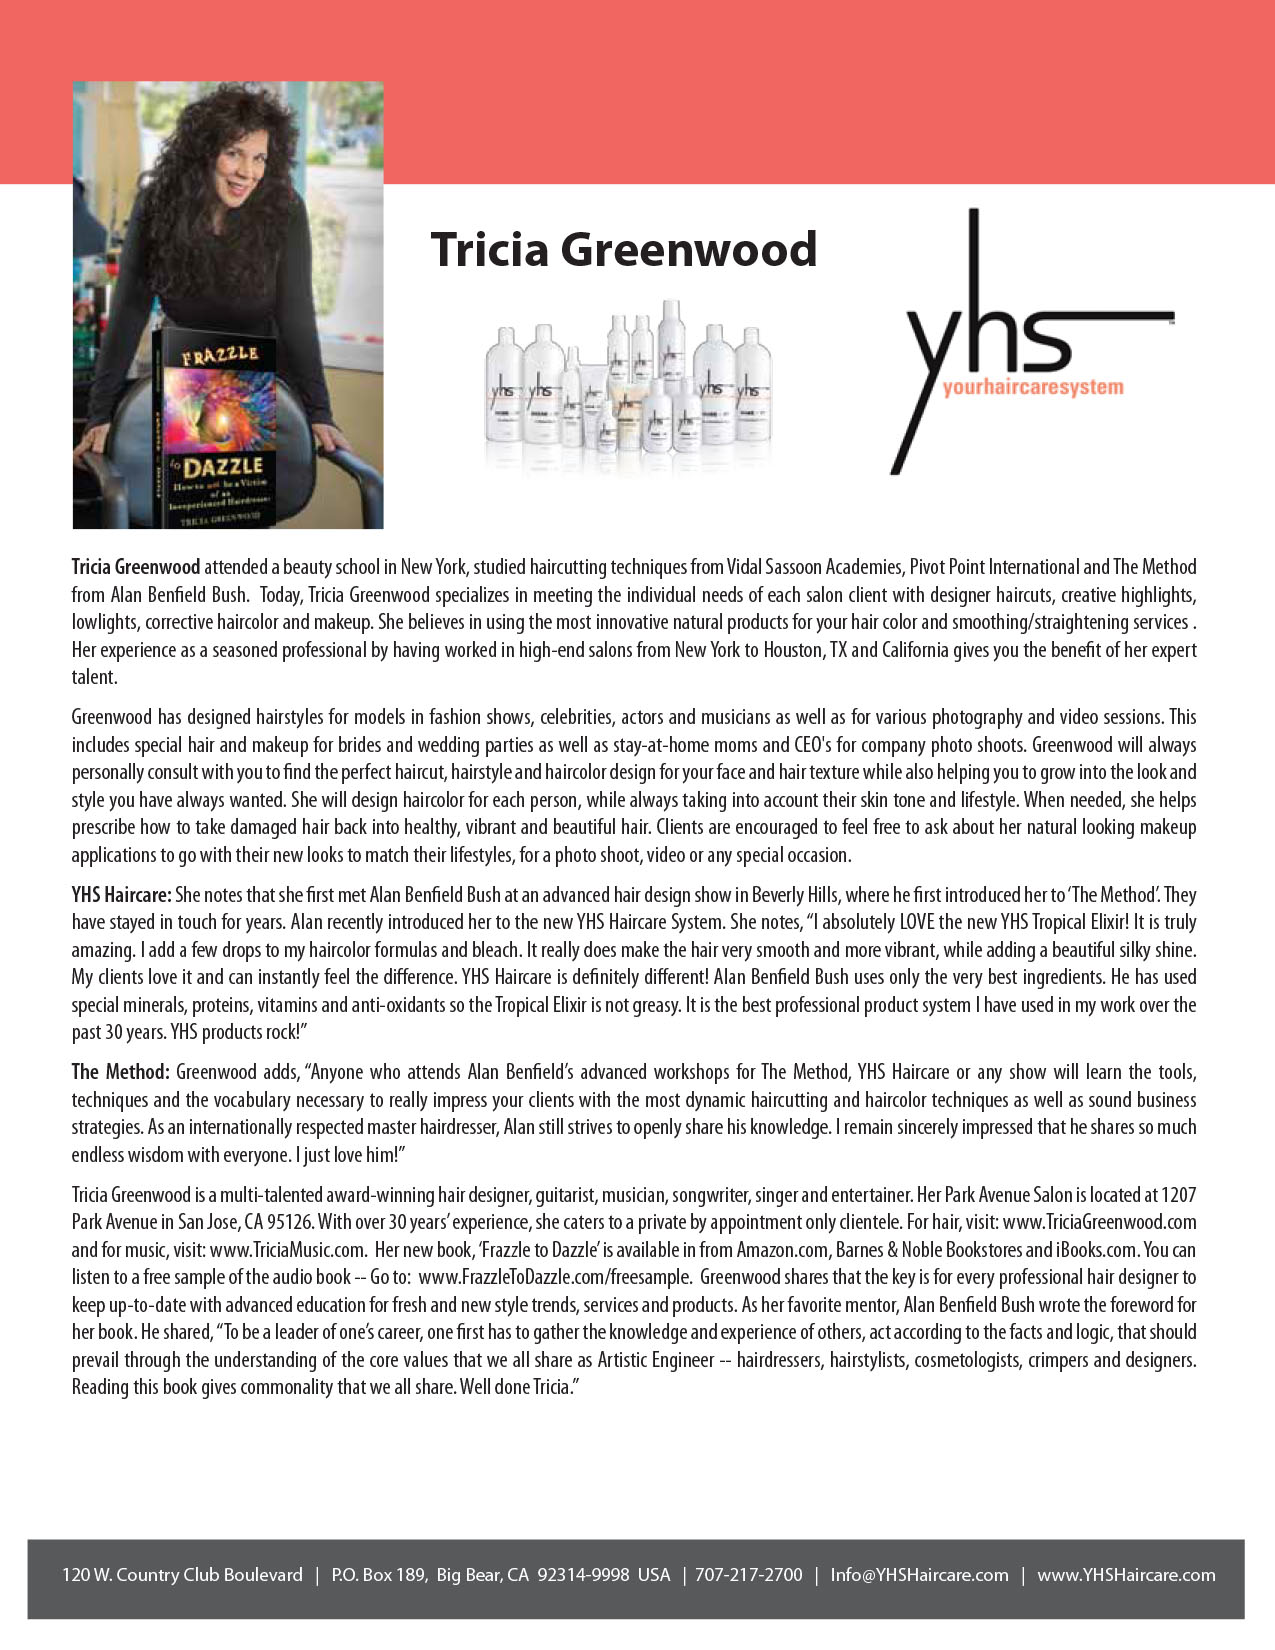 Tricia Greenwood Testimonials – YHS Haircare